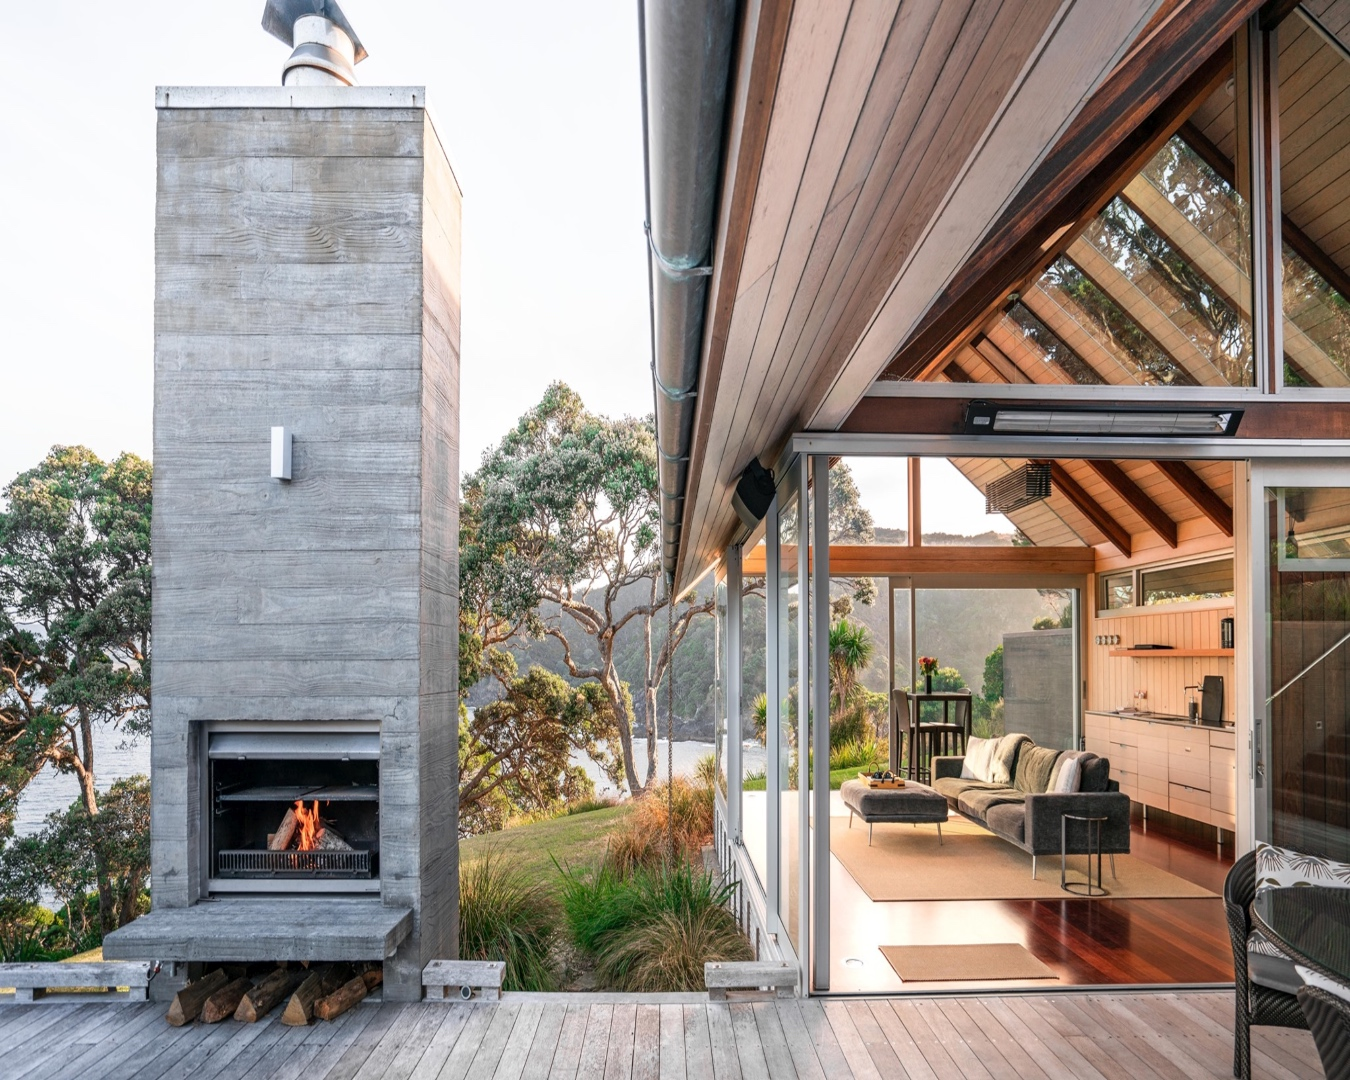 A stunning view of an outdoor fireplace and luxurious house made of glass overlooking the ocean.